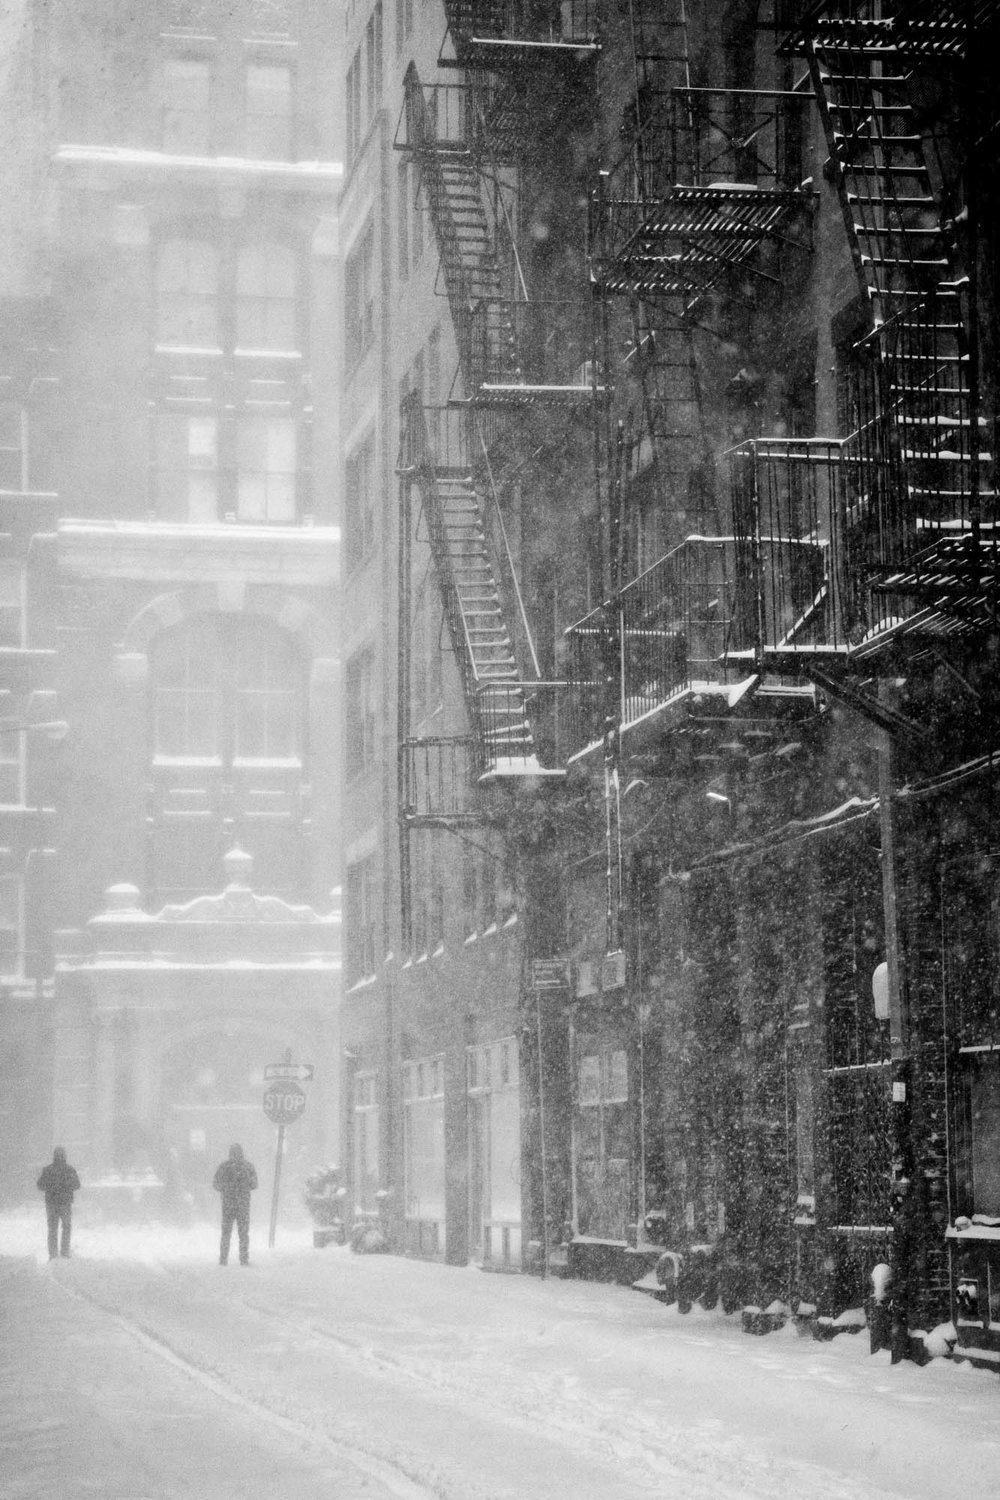 180104_NYC_Snowstorm_View_102.jpg